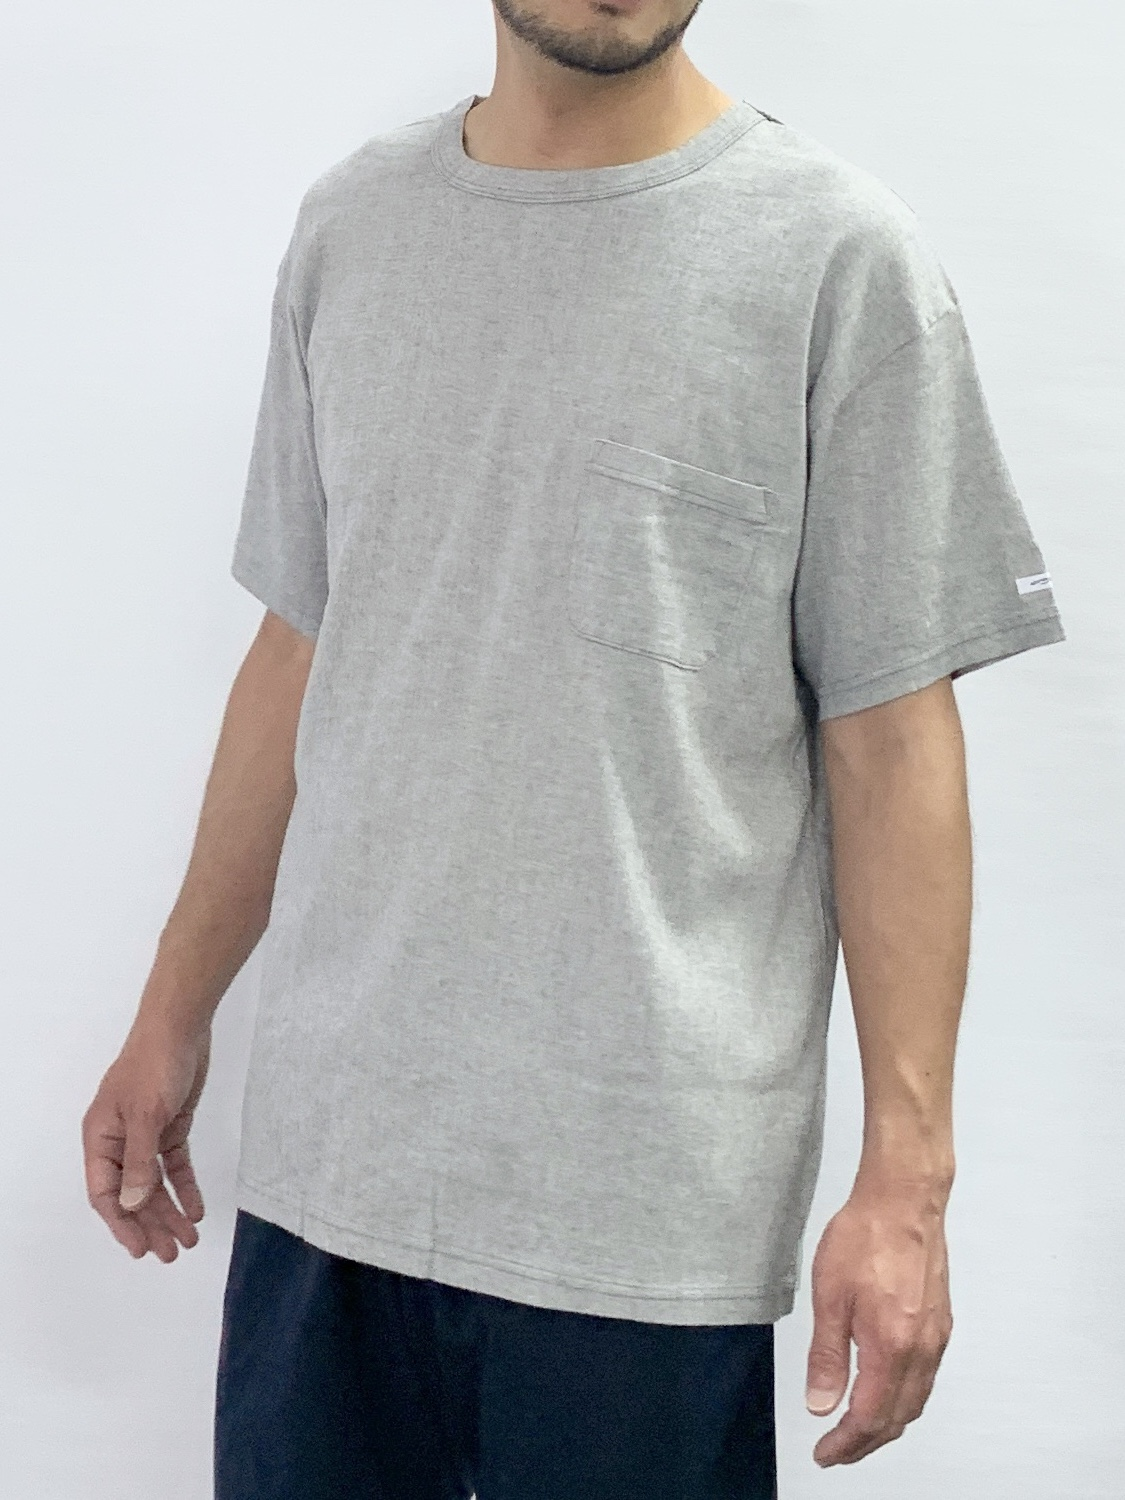 CREW NECK SHORT SLEEVE POCKET T-SHIRT